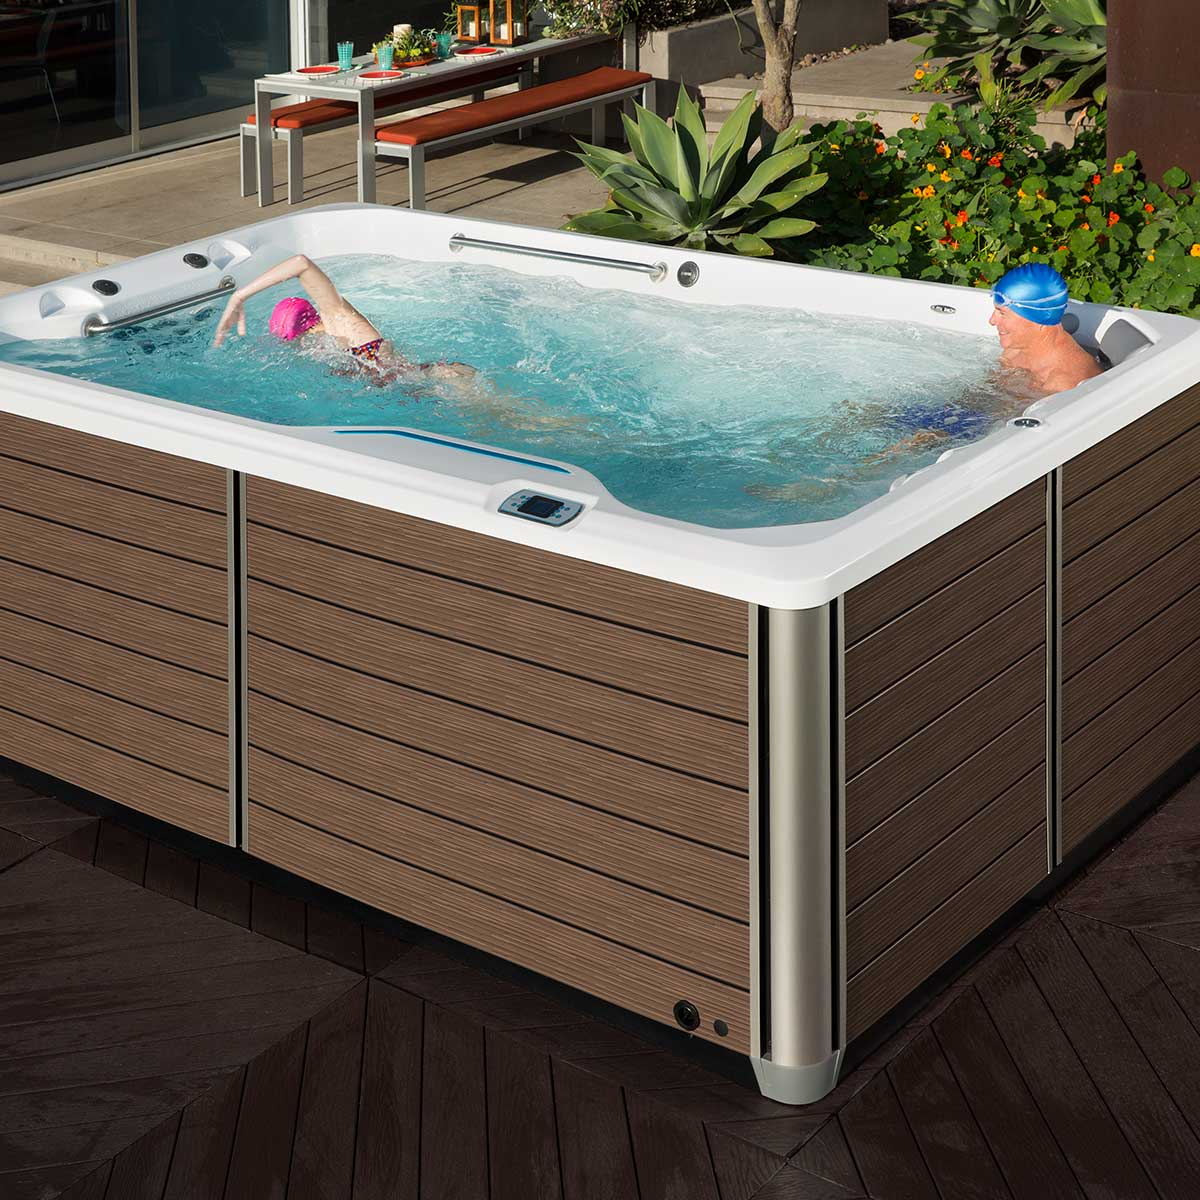 X200 Swimcross Exercise Systems Spring Dance Hot Tubs